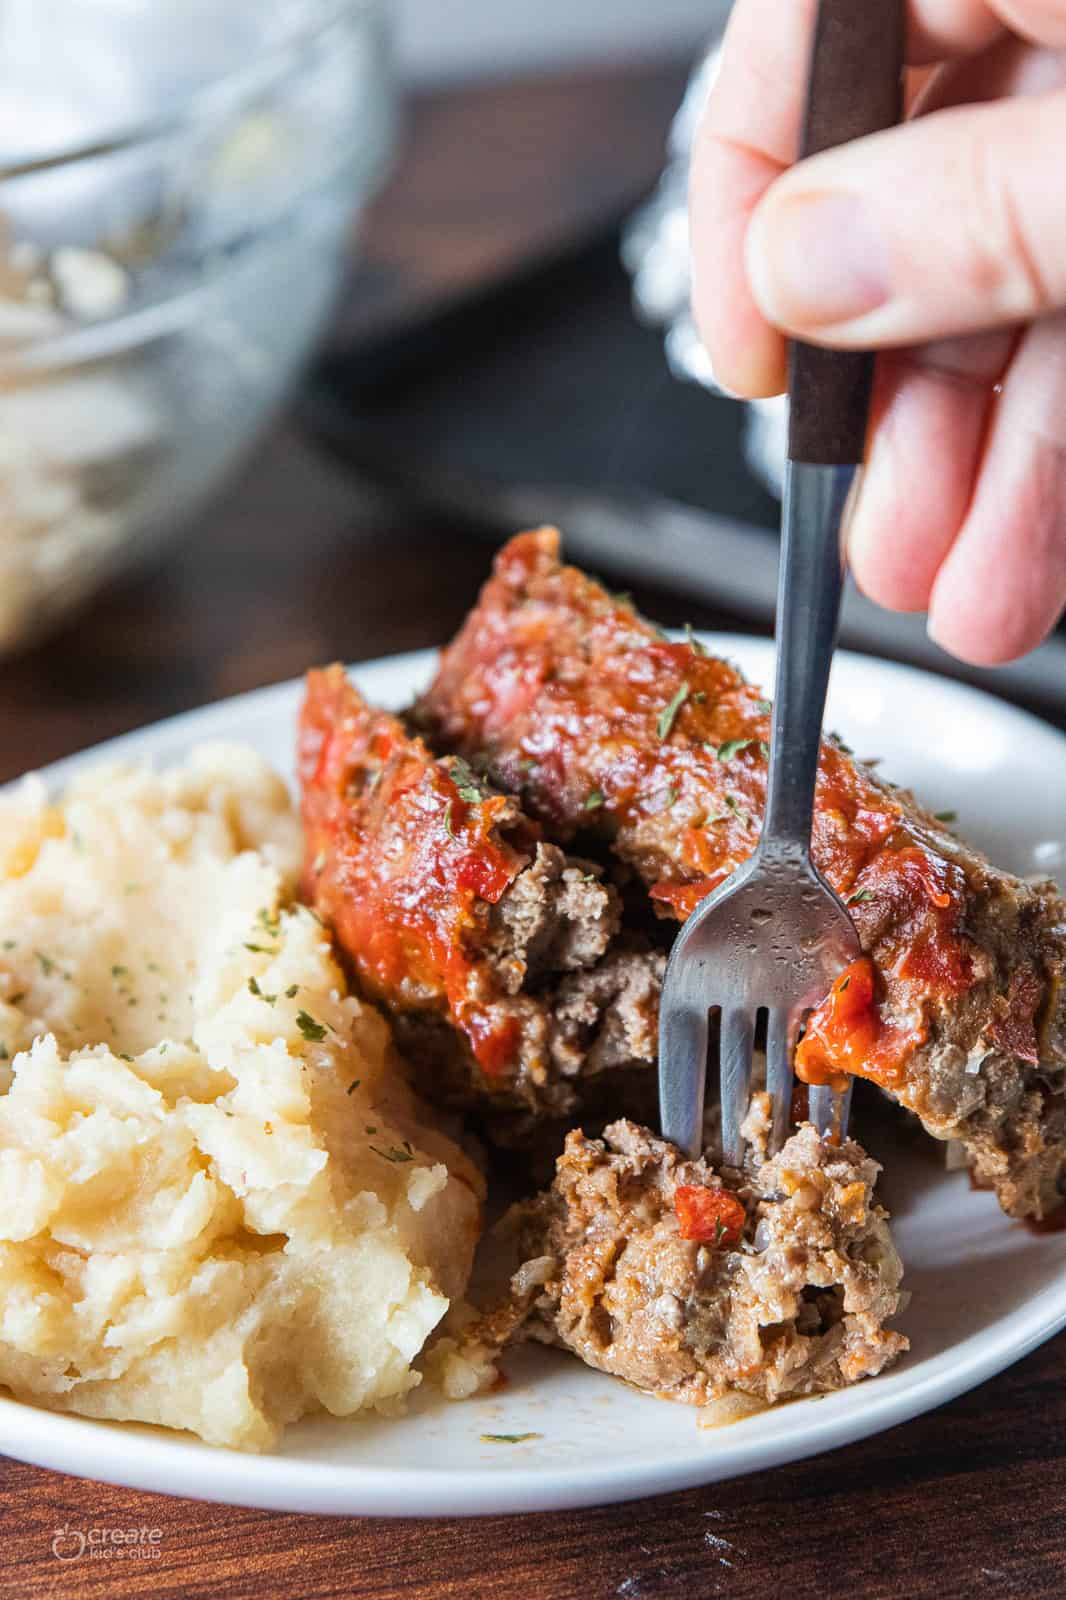 meatloaf on plate with mashed potatoes with a fork